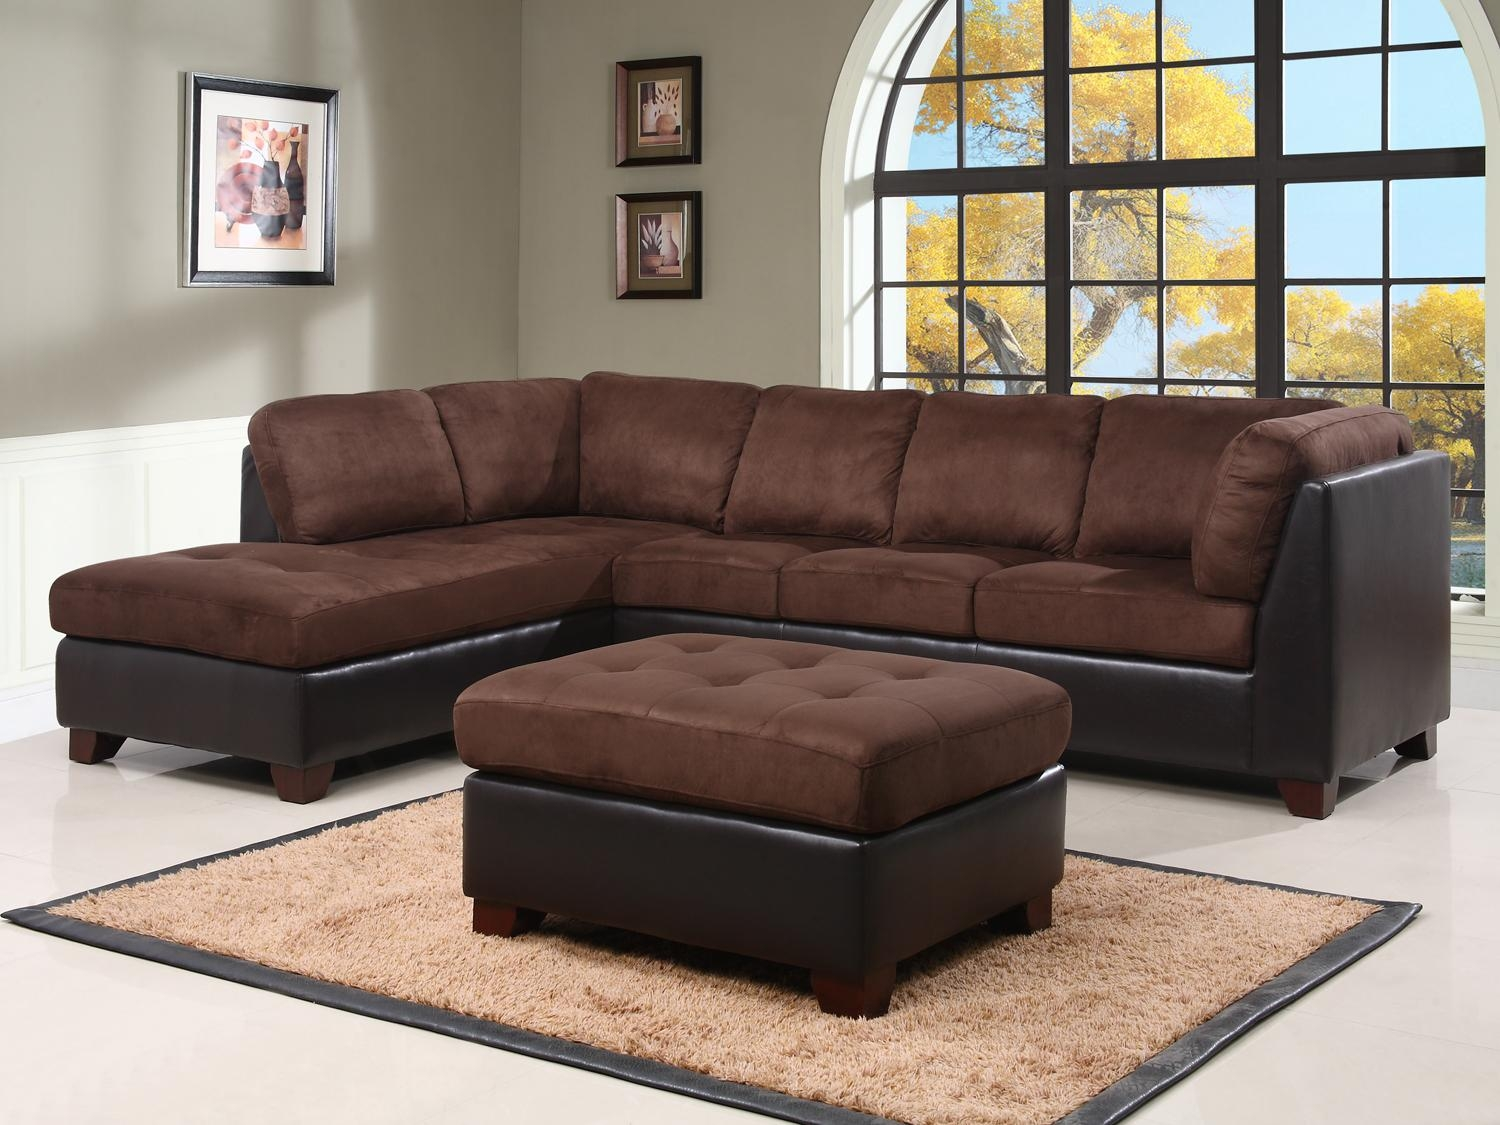 12 ideas of abbyson living charlotte dark brown sectional for Taylor sectional sofa and ottoman dark brown